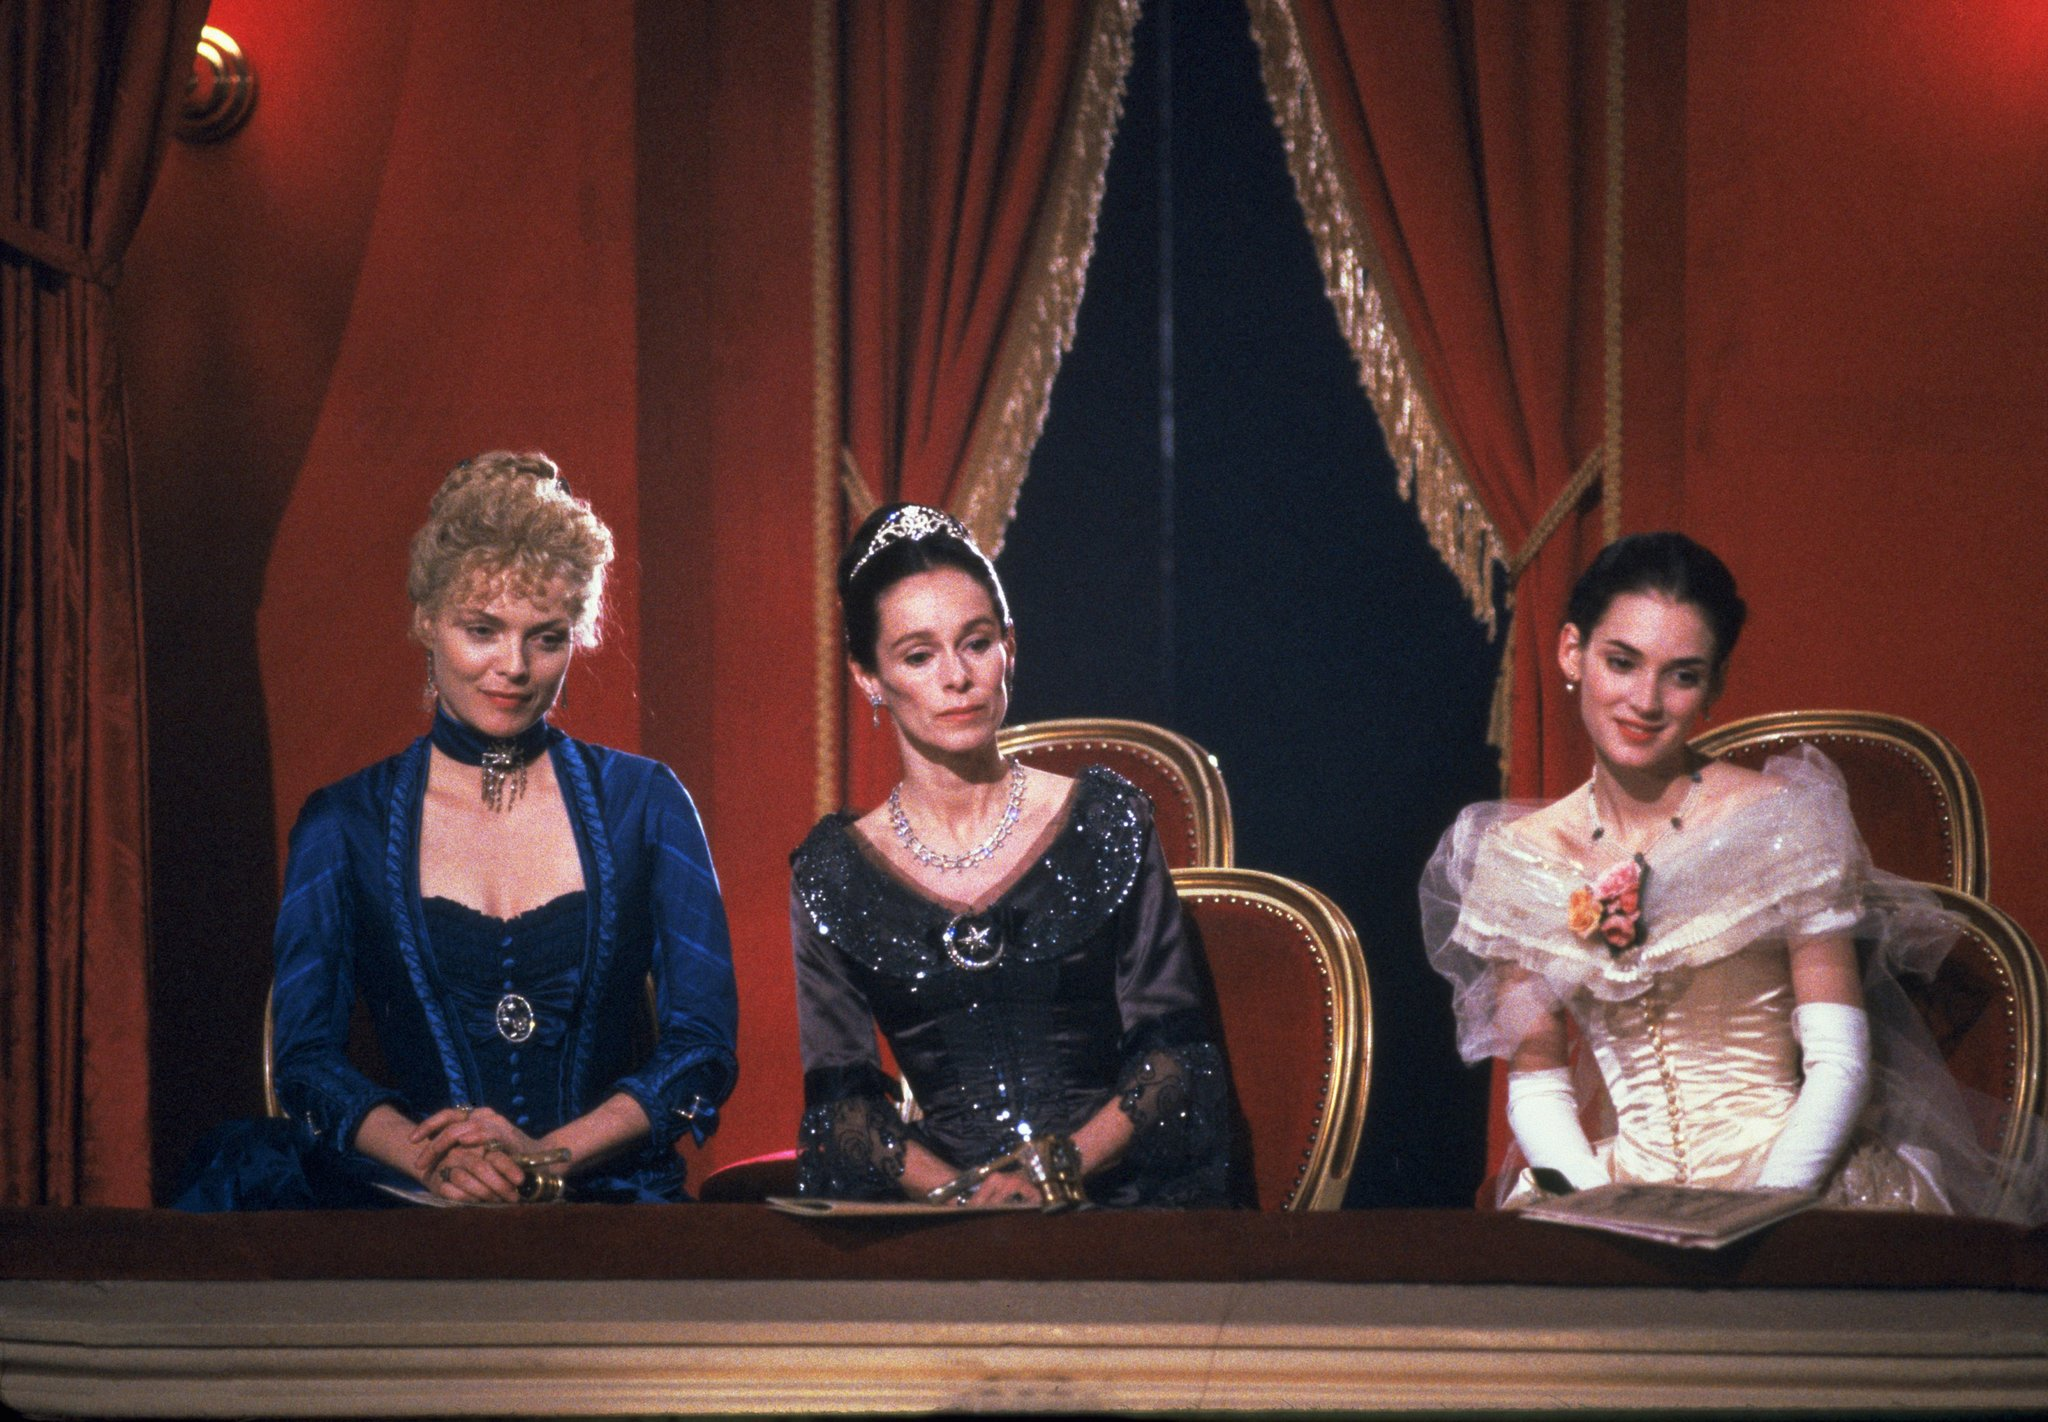 Michelle Pfeiffer, Winona Ryder, and Geraldine Chaplin in The Age of Innocence (1993)